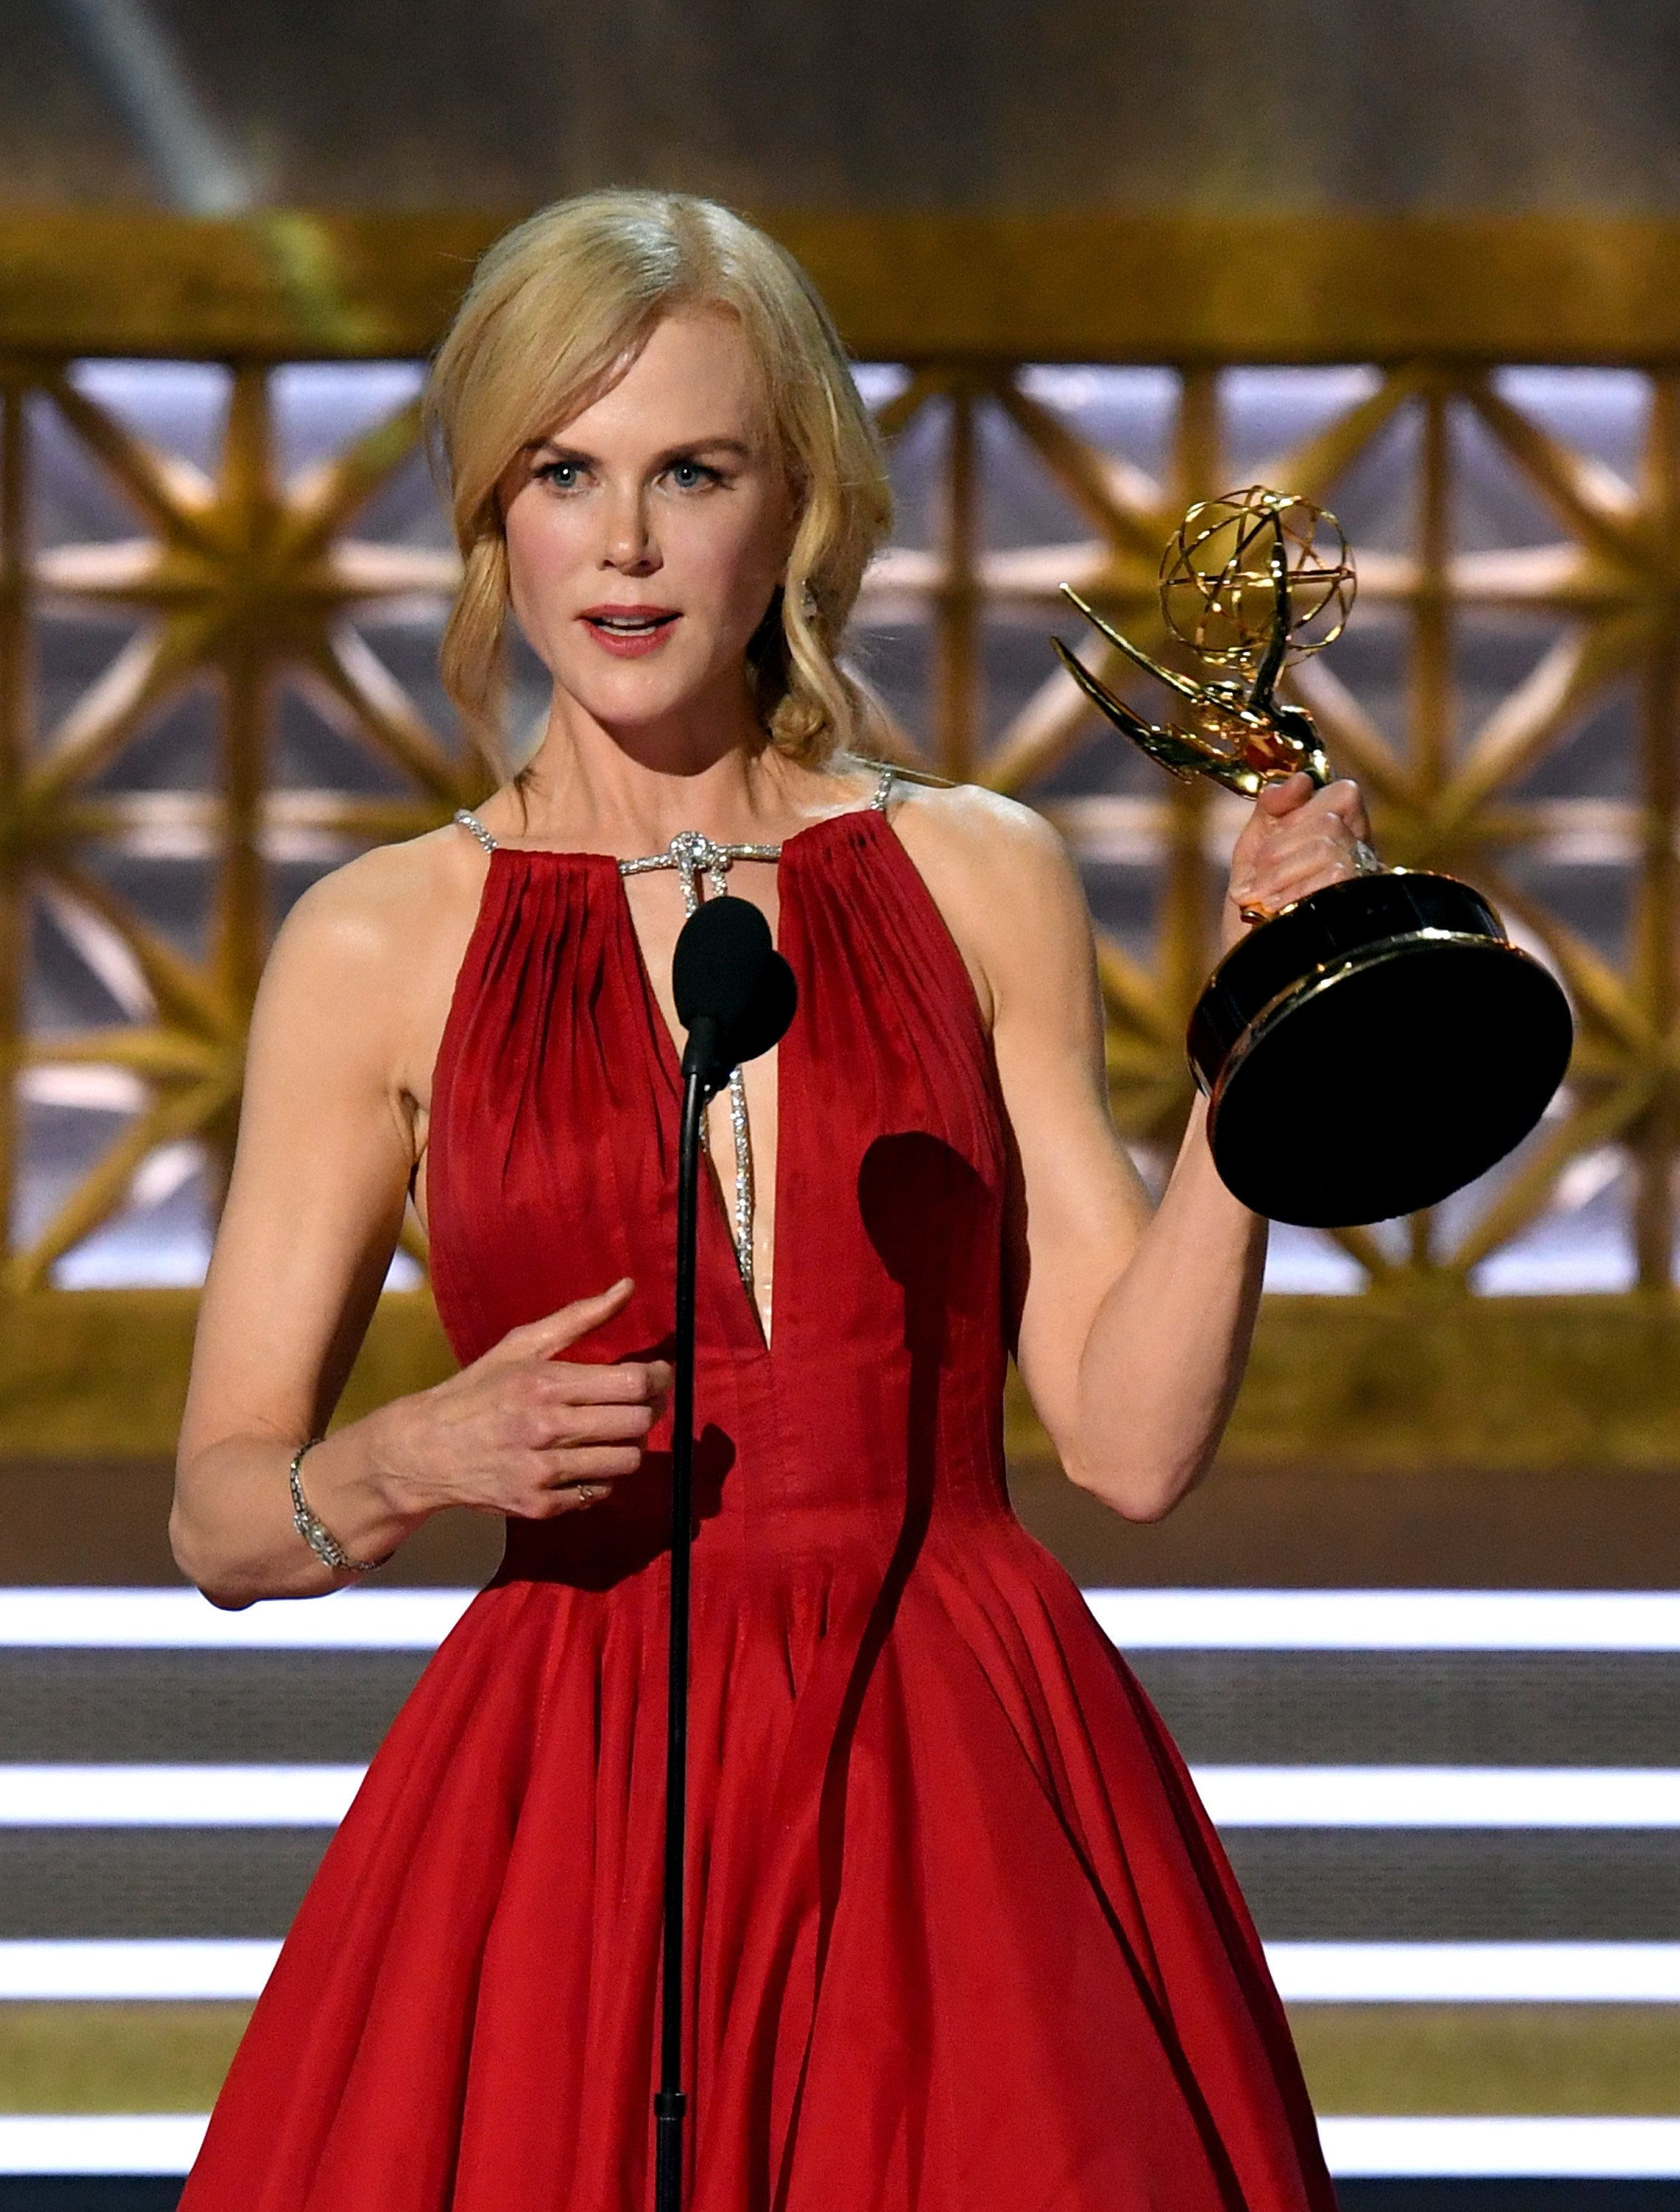 LOS ANGELES, CA - SEPTEMBER 17:  Actor Nicole Kidman accepts Outstanding Lead Actress in a Limited Series or Movie for 'Big Little Lies' onstage during the 69th Annual Primetime Emmy Awards at Microsoft Theater on September 17, 2017 in Los Angeles, California.  (Photo by Kevin Winter/Getty Images)